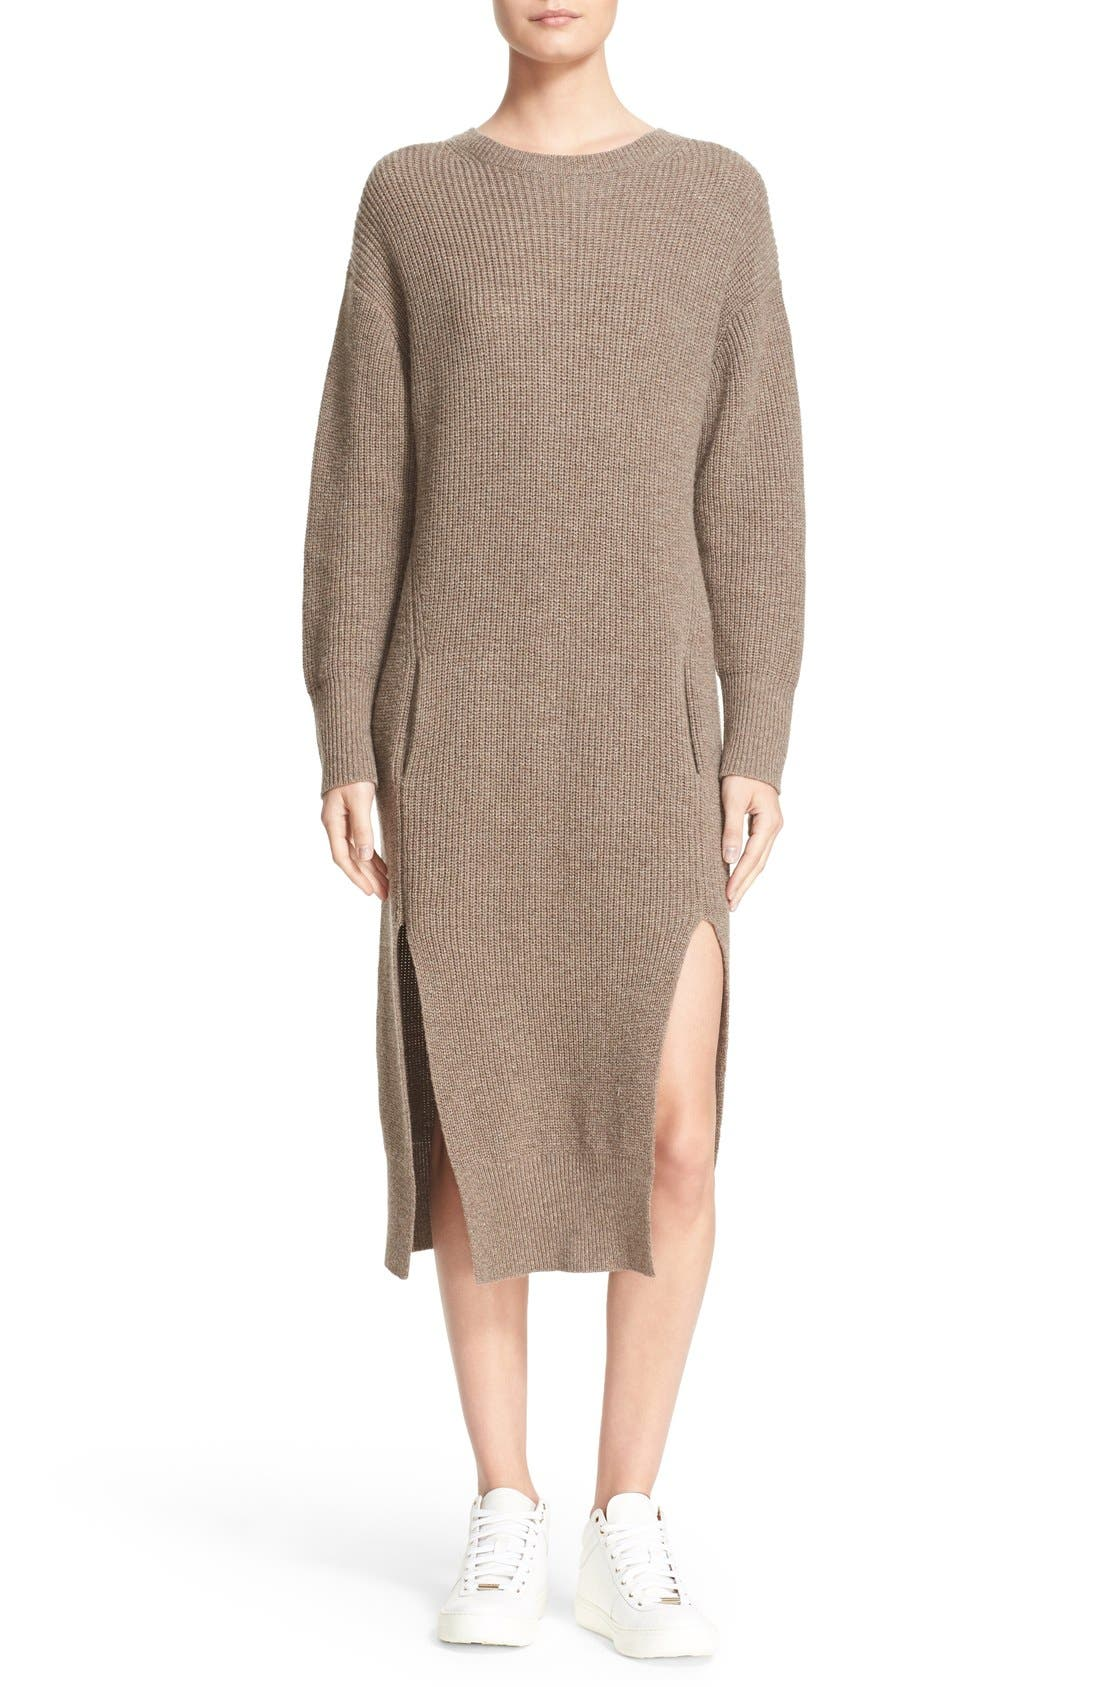 Main Image - Sea Wool & Cashmere Midi Sweater Dress